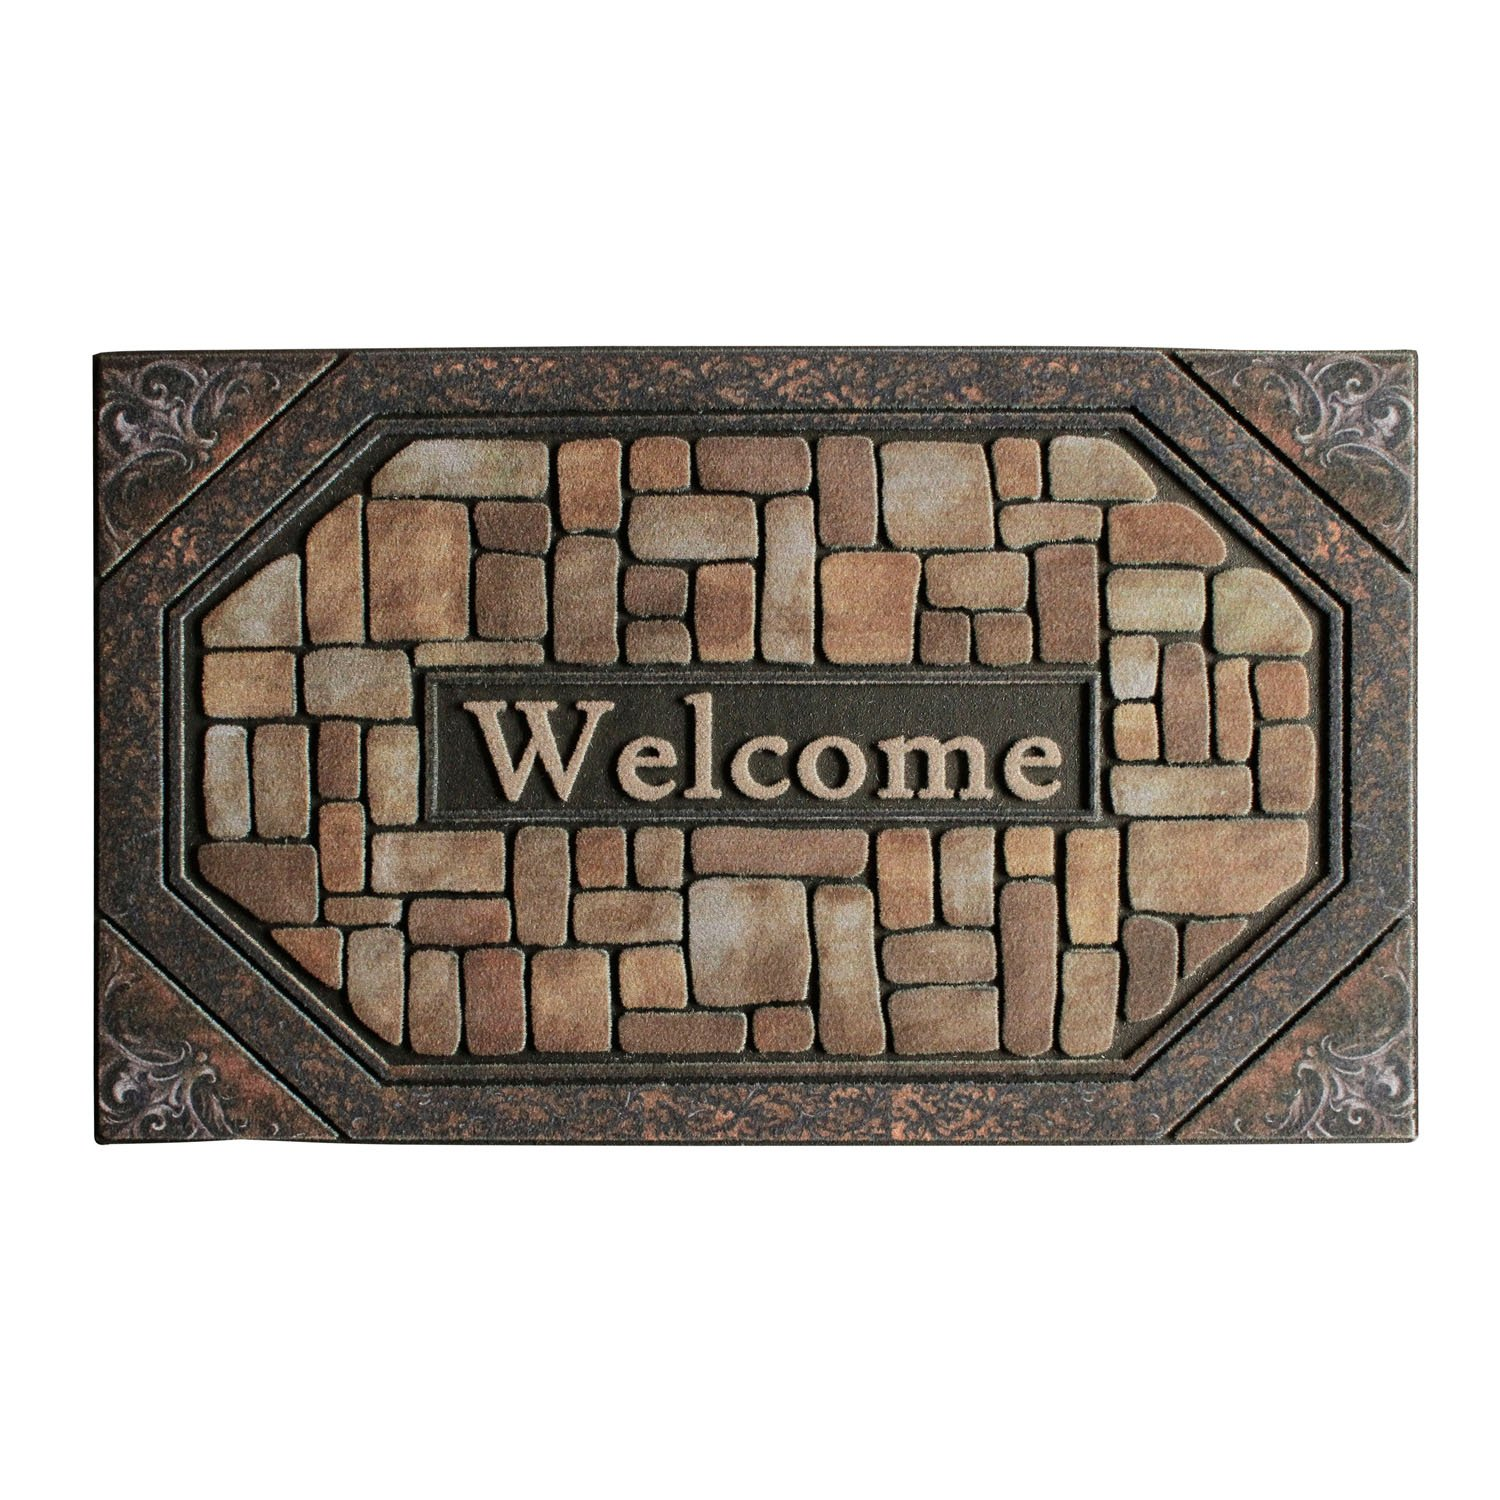 Front Door Mat Entrance Rug Floor Mats, Waterproof Floor Mat Shoes Scraper Doormat, 18''x30'' Patio Rug Dirt Debris Mud Trapper Outdoor Welcome Door Mat Carpet (Welcome)